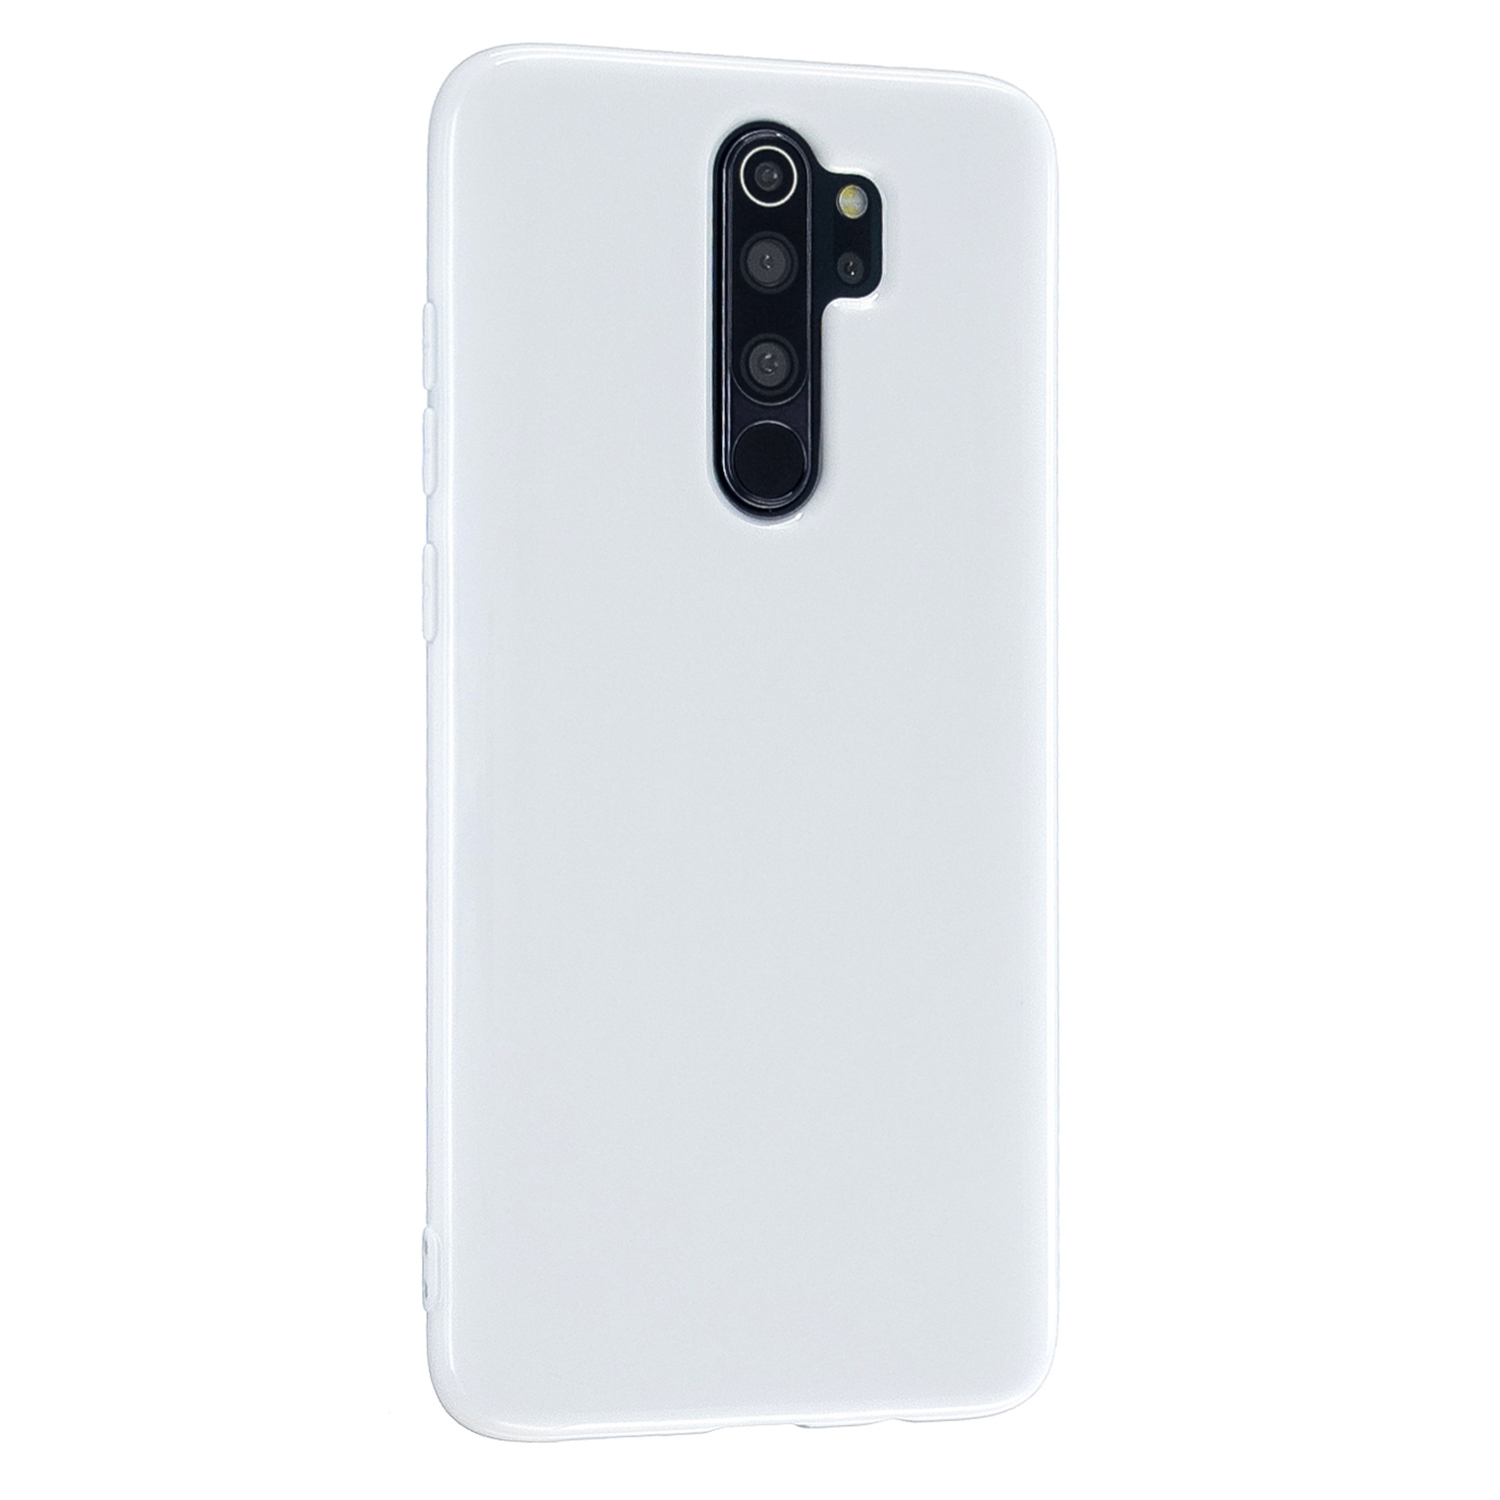 for VIVO Reno Ace/X2 PRO/ A9 2020/A5 2020 Thicken 2.0mm TPU Back Cover Cellphone Case Shell white